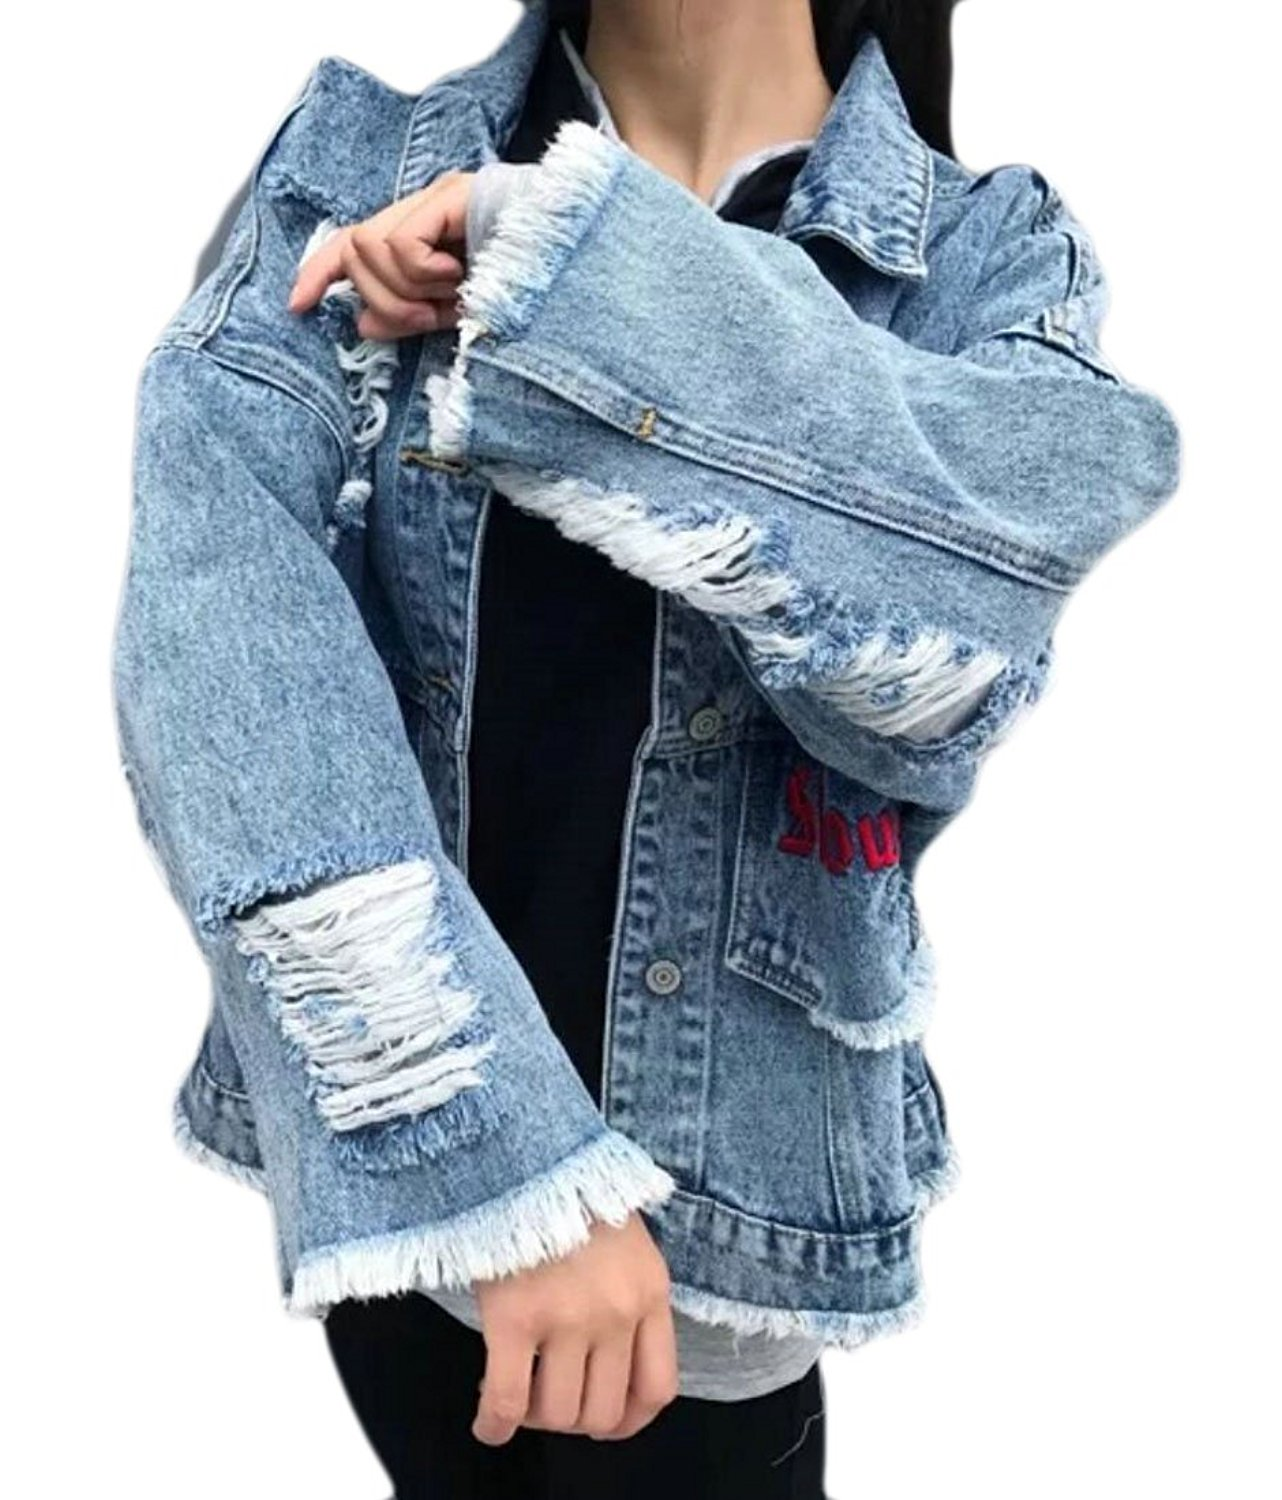 ouxiuli Womens Blue Distressed Wash Button Long Sleeve Denim Jean Jacket Coat With Pockets